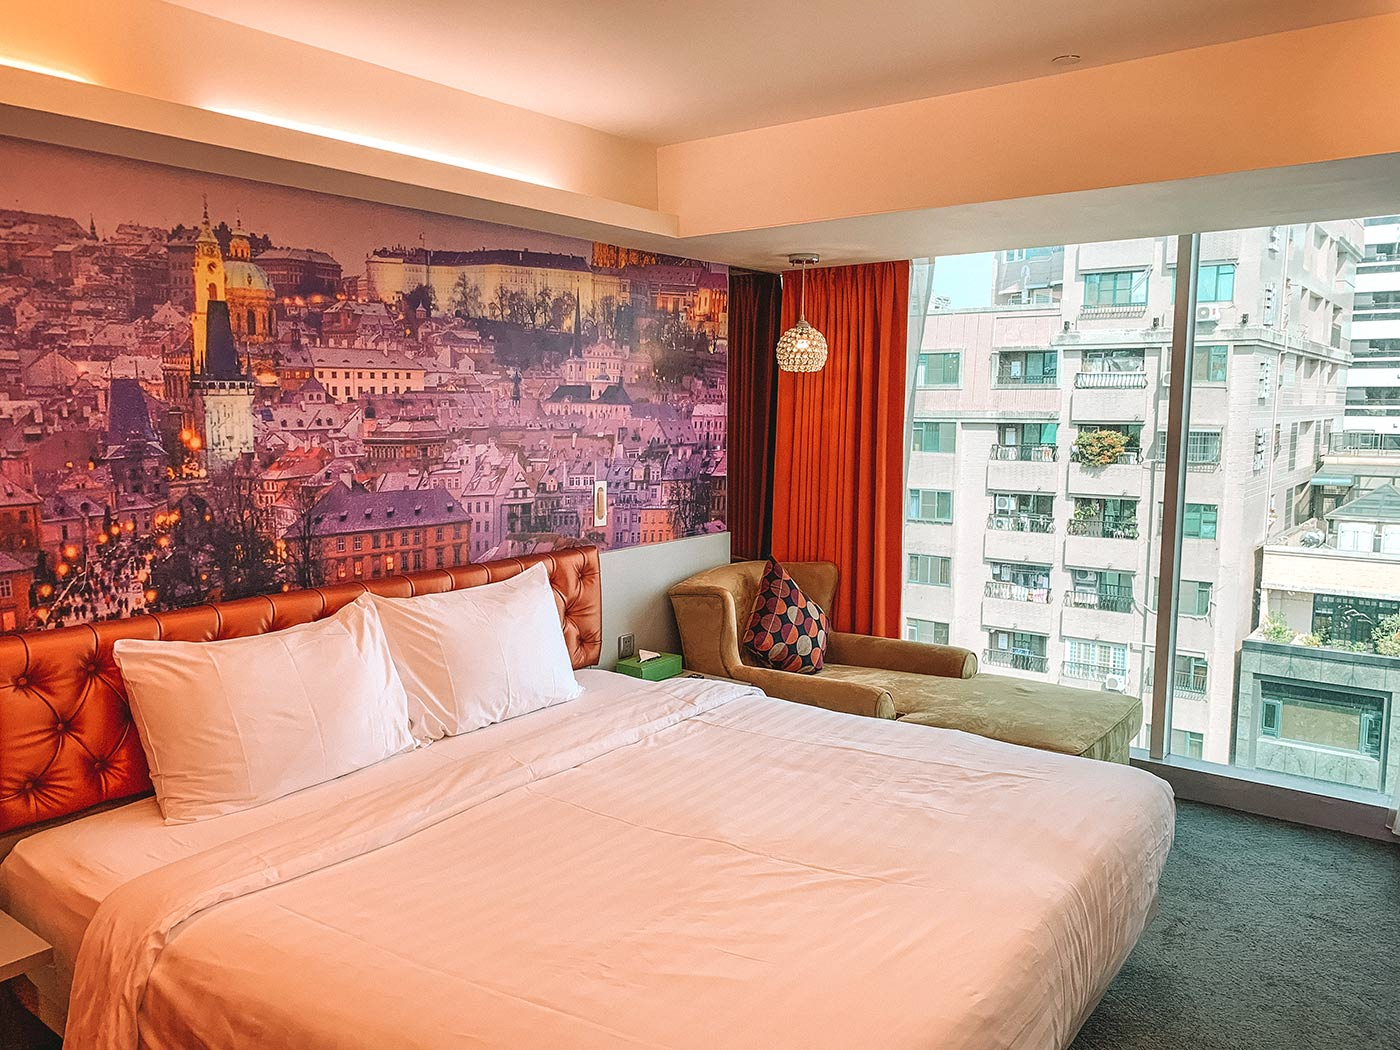 Top things to do in Kaohsiung, Taiwan  FX INN HOTEL blog post